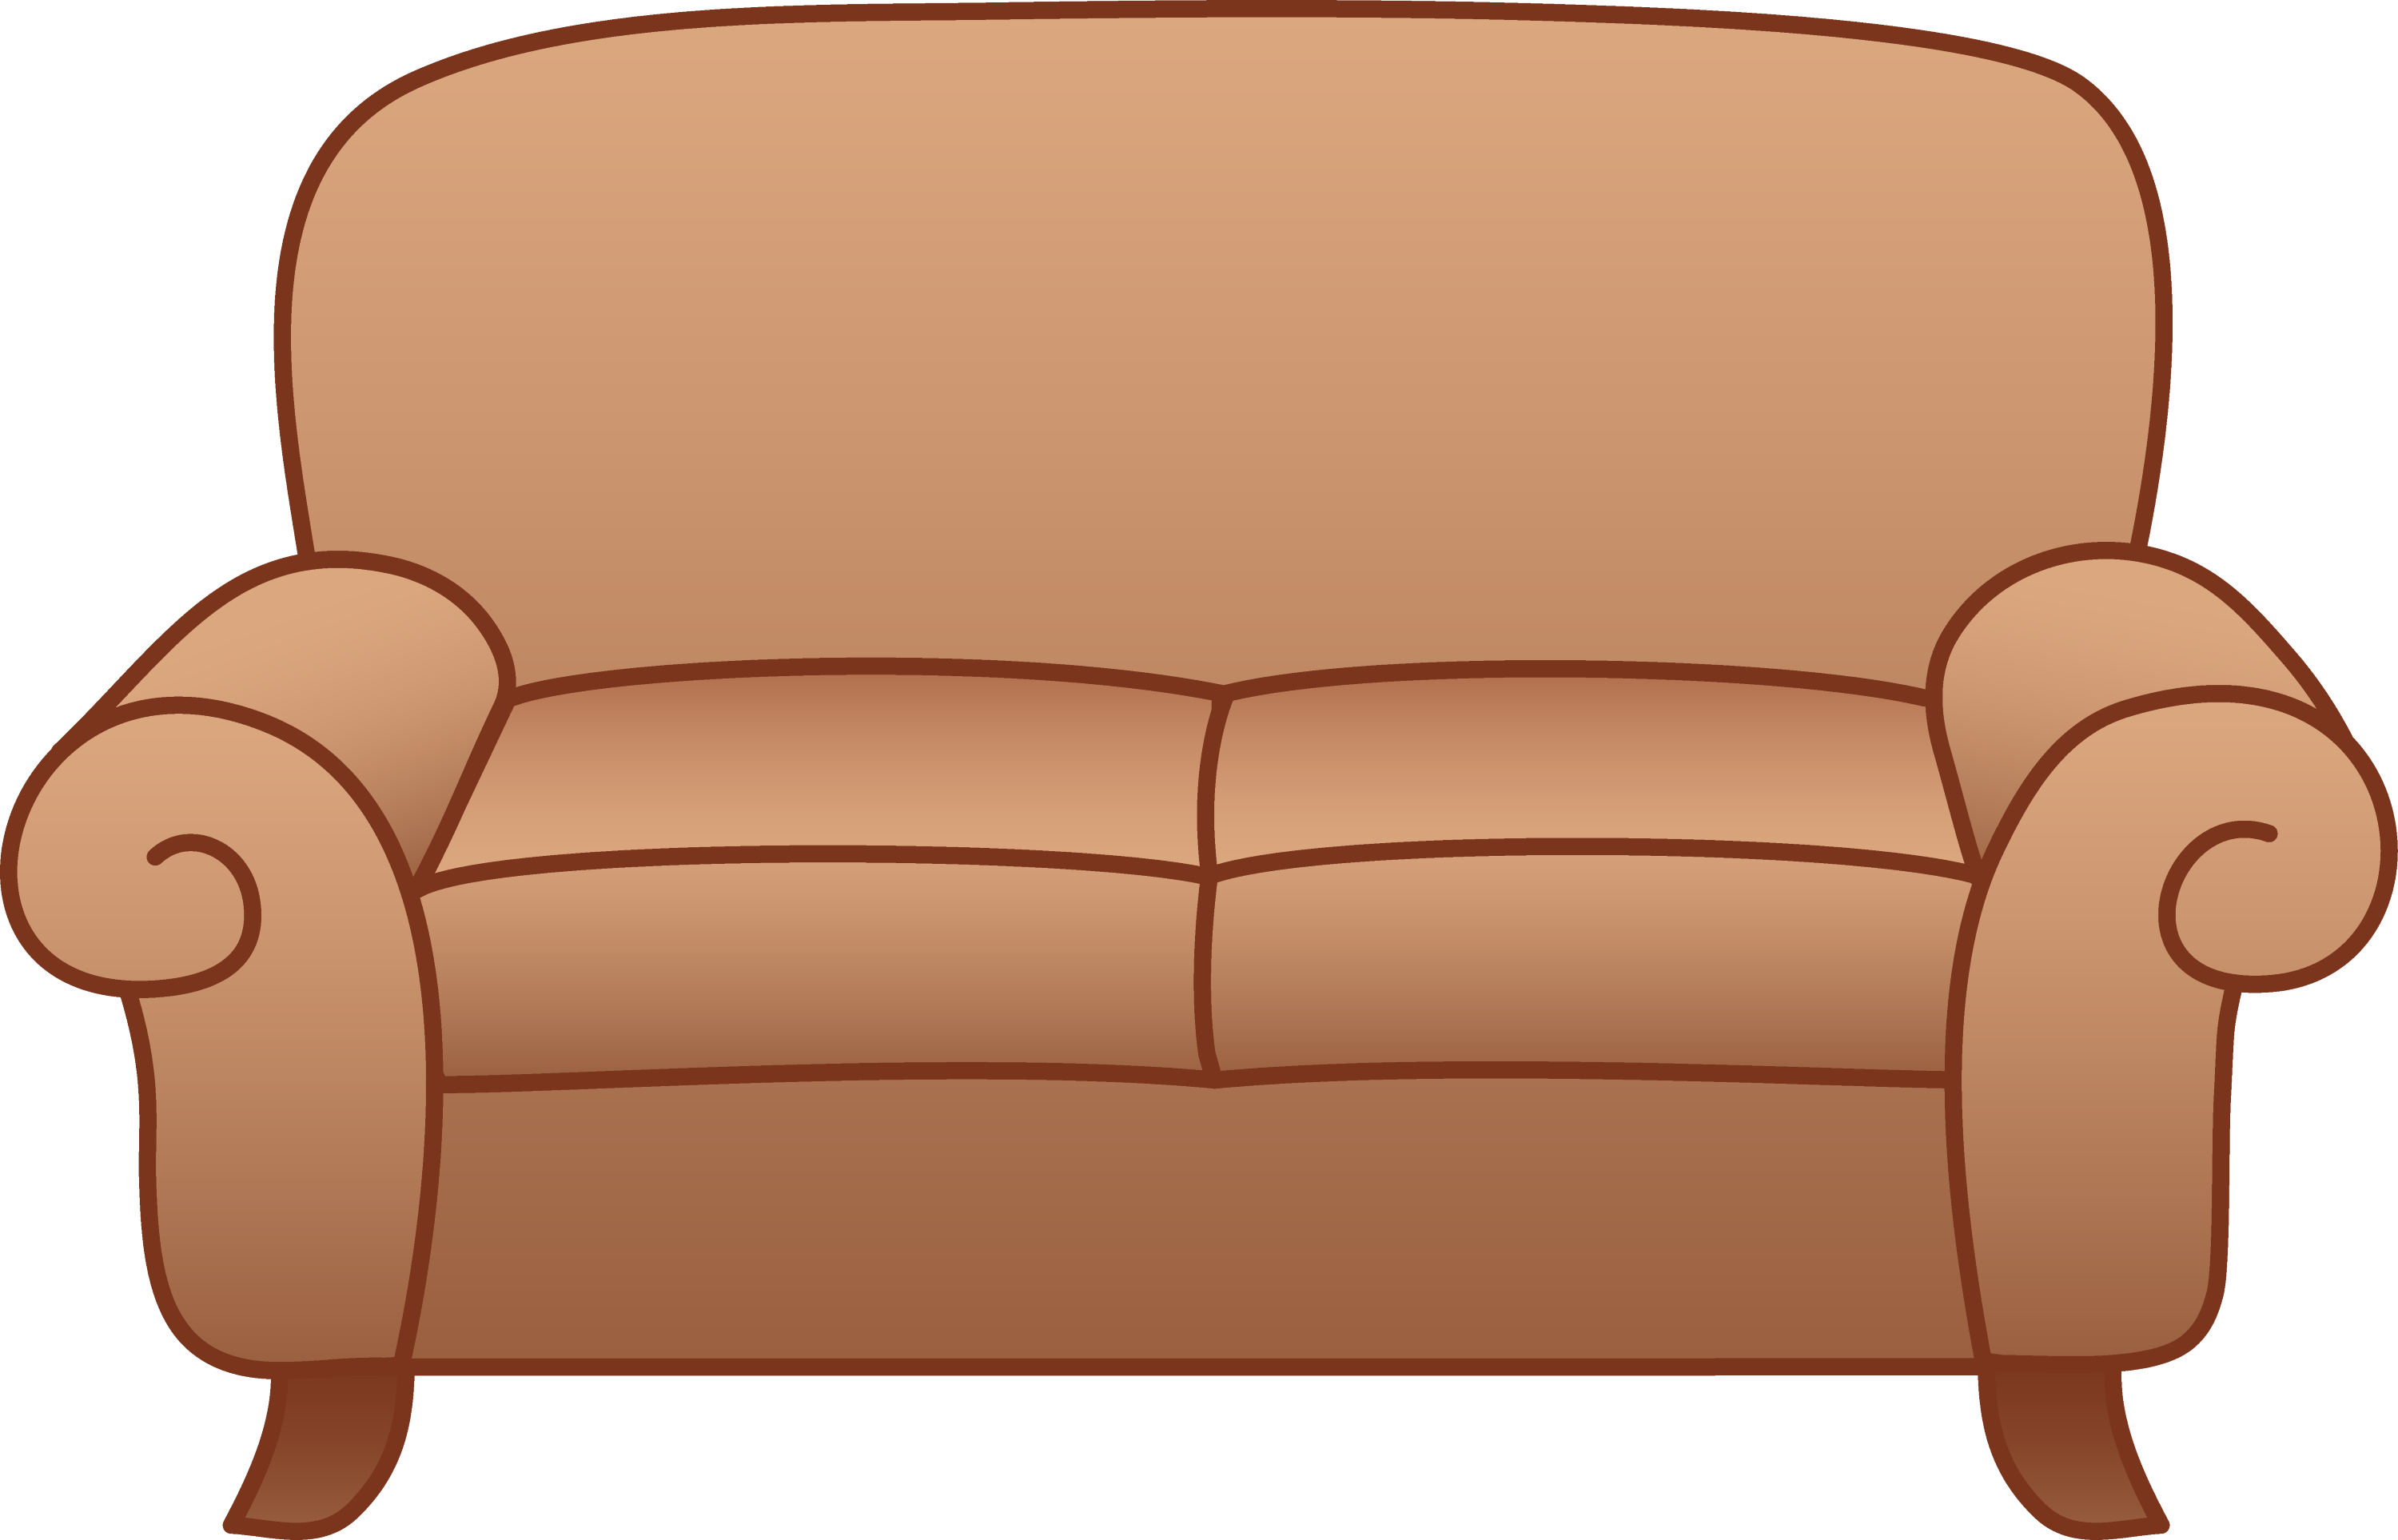 cartoon sofa chair. Beige Sofa Clip Art Cartoon Chair A